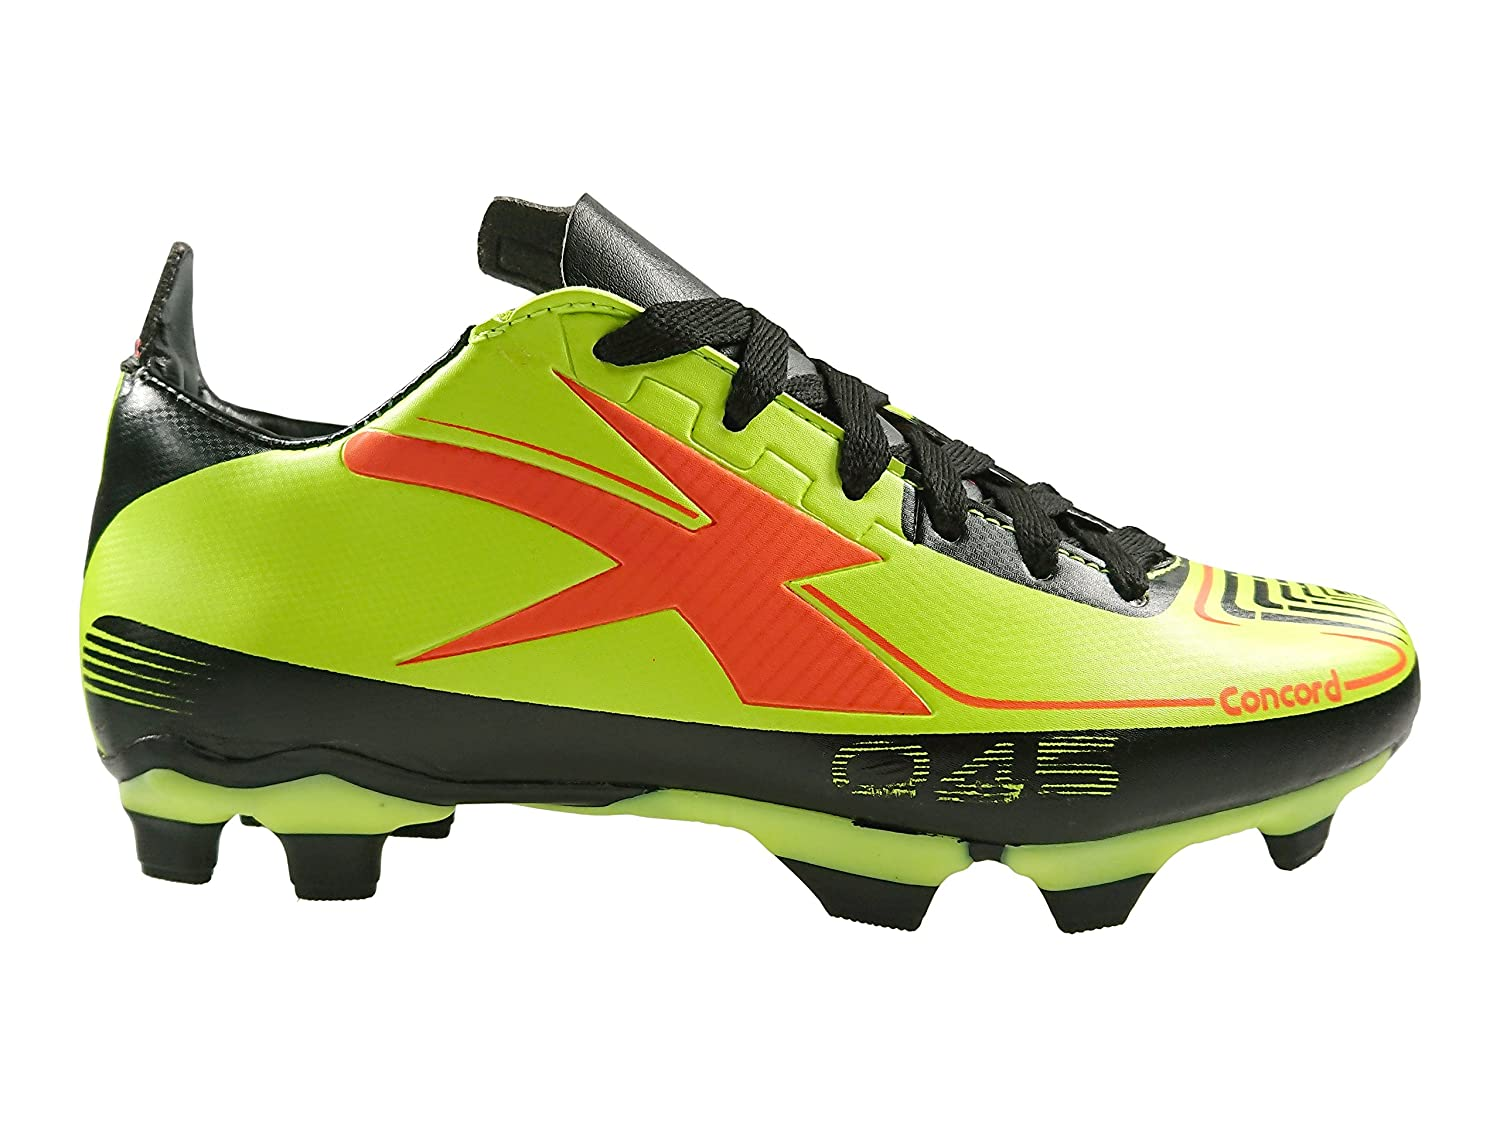 Authentic Concord Soccer Cleats Style S045CV Green Fluorescent B07CT9P6ZP Youth 5